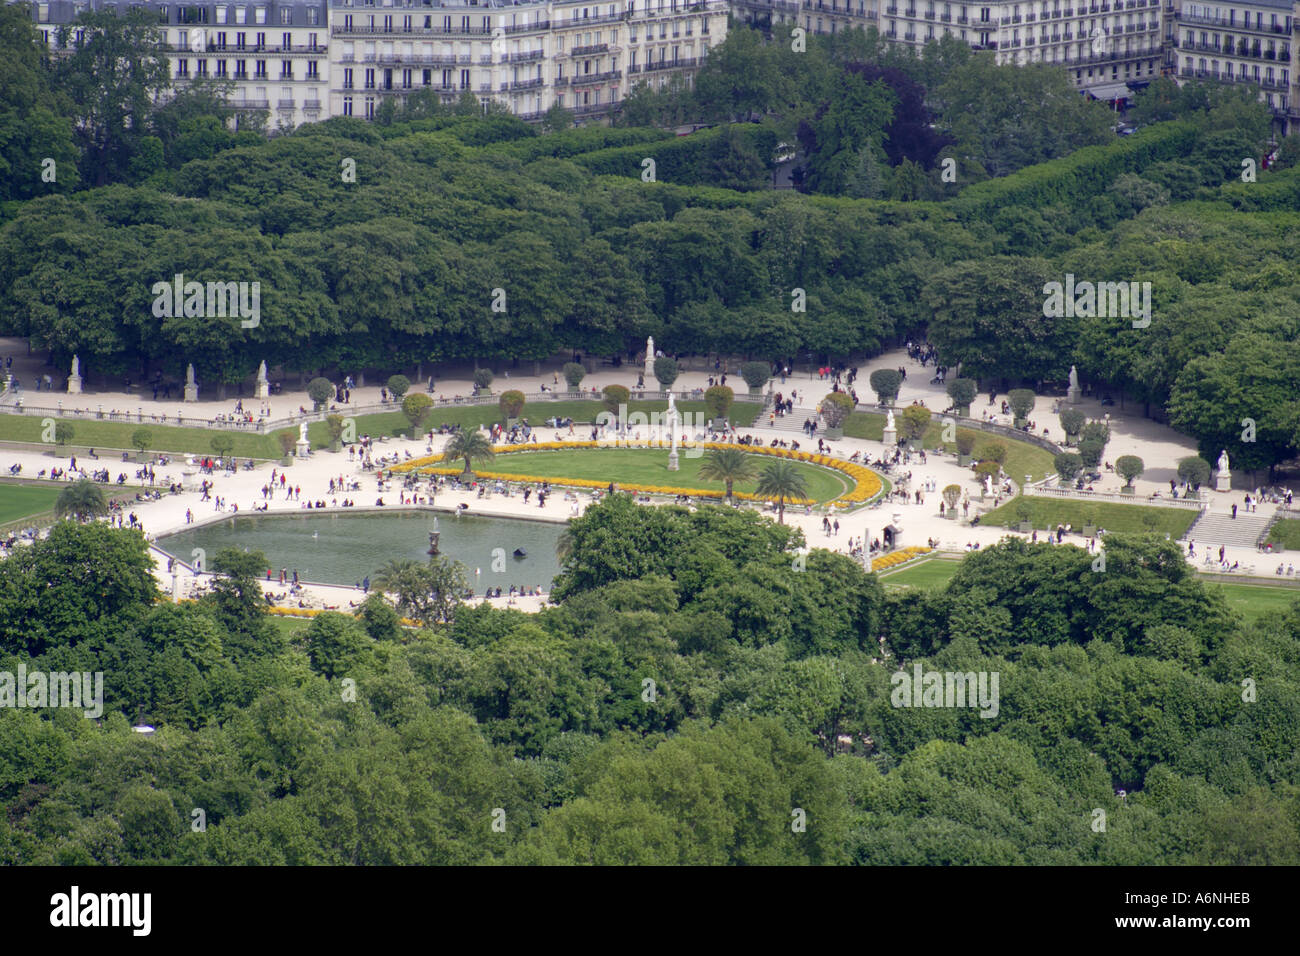 Aerial View Of The Jardin Du Luxembourg Paris France Stock Photo